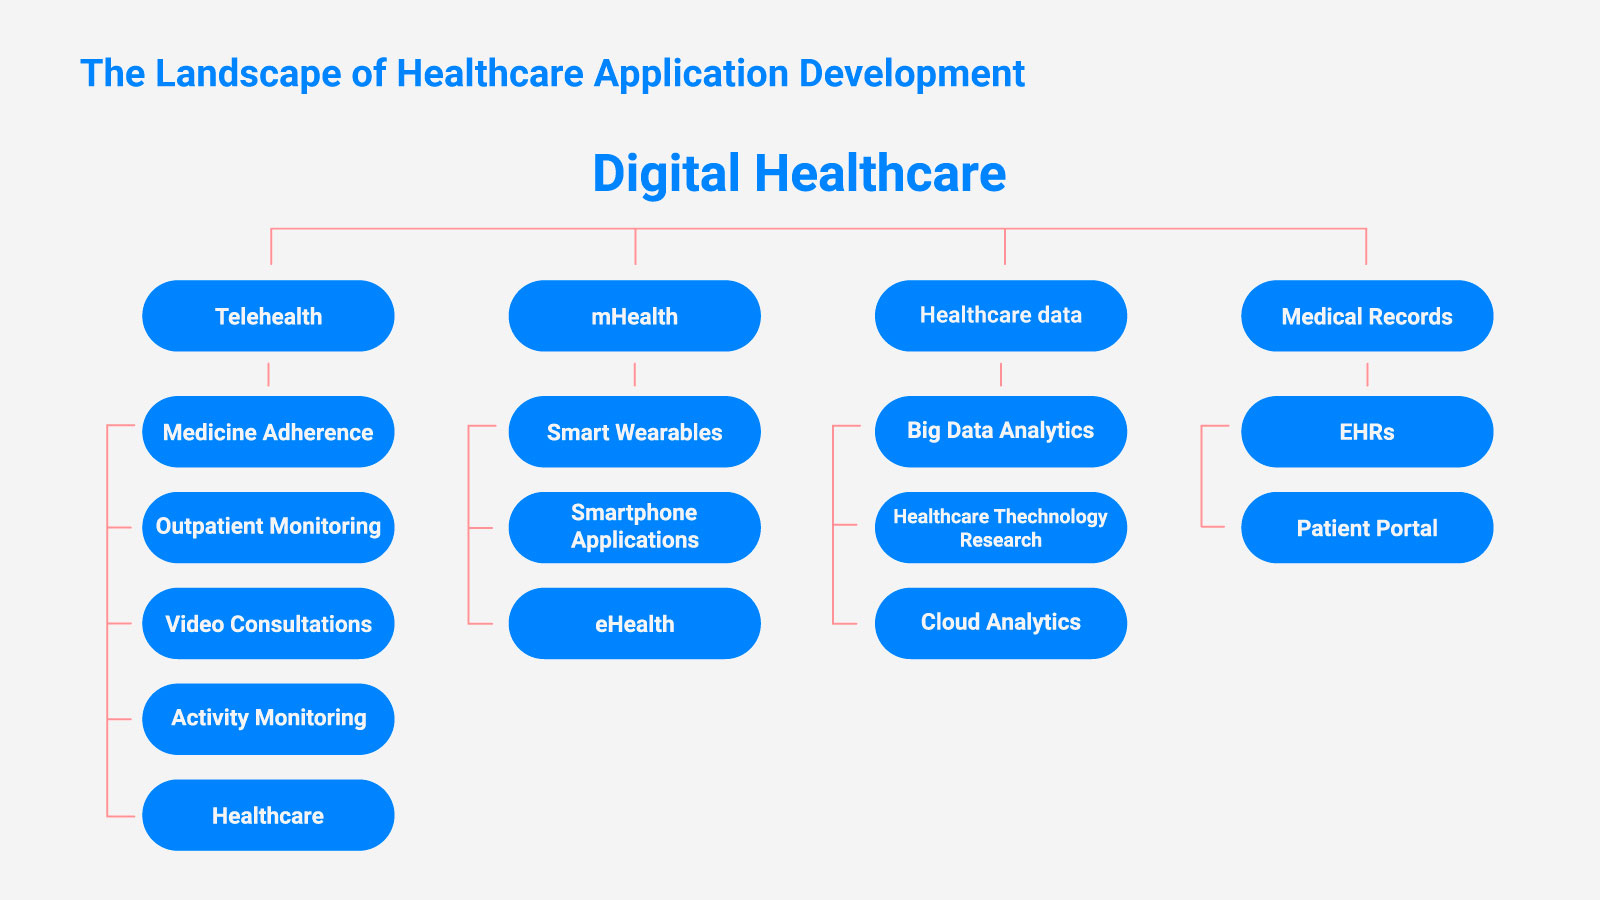 The Landscape of Healthcare Application Development